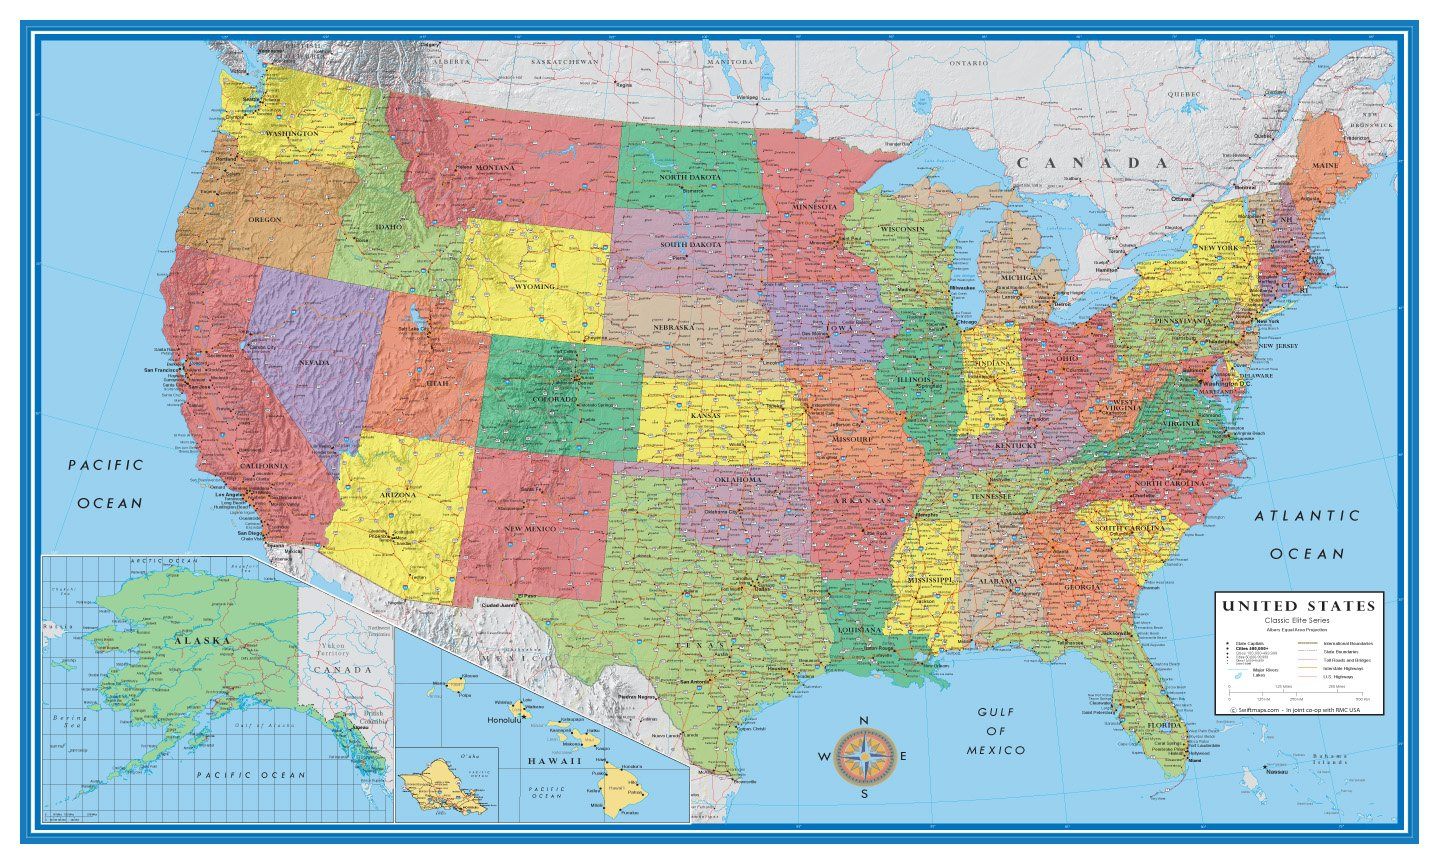 Amazoncom X United States USA Classic Elite Wall Map Mural - World map for sale